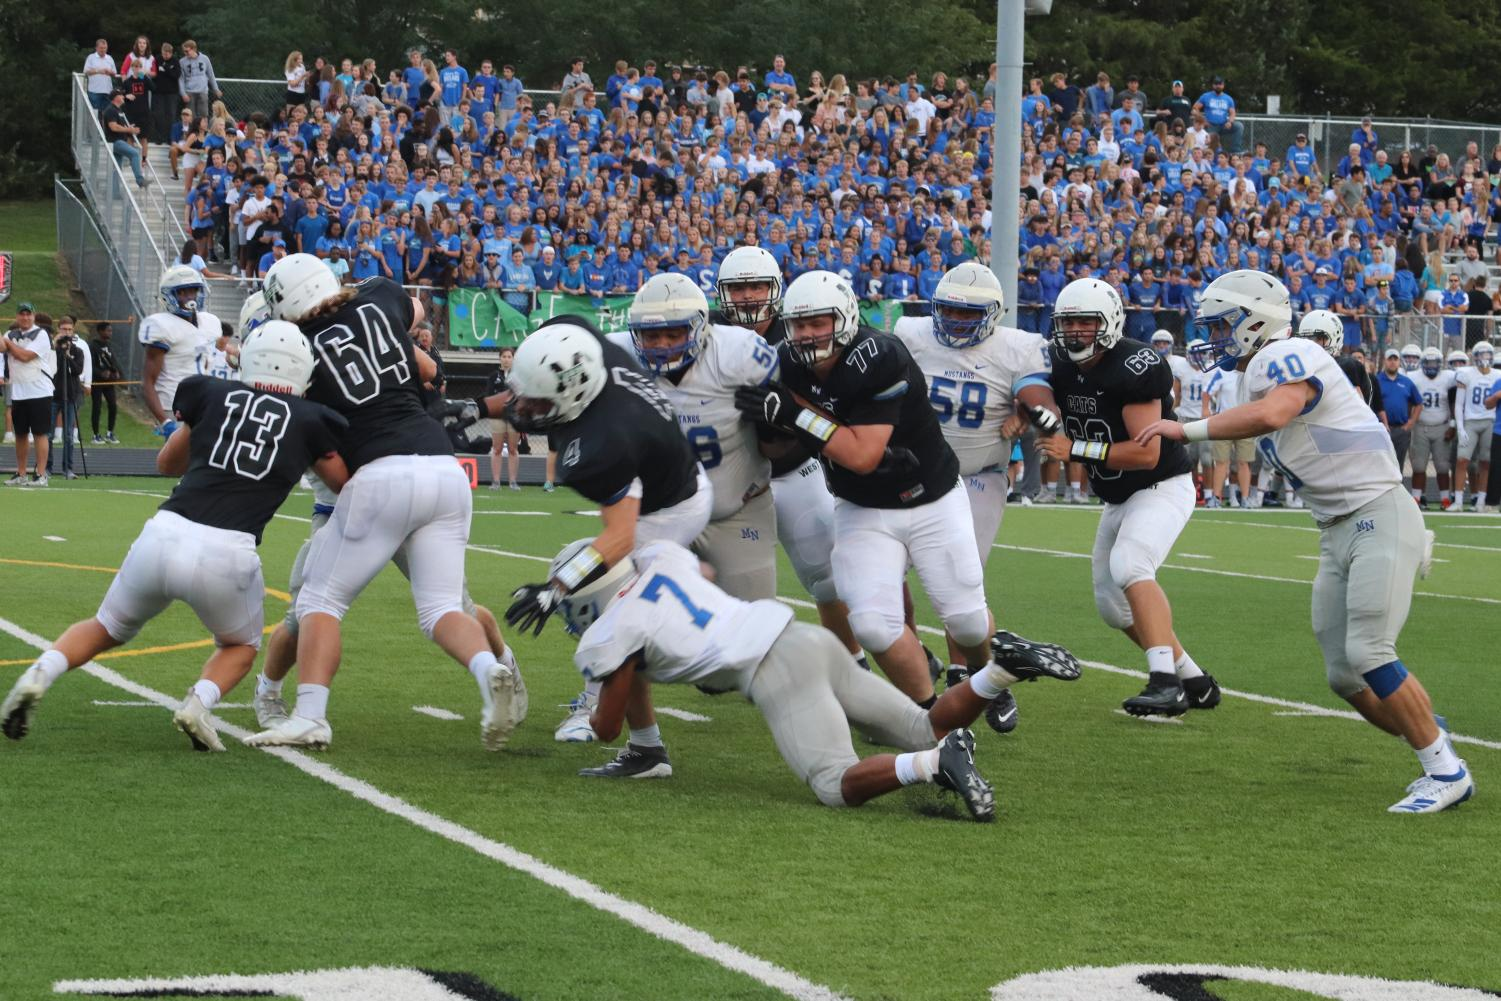 Players+getting+tackled